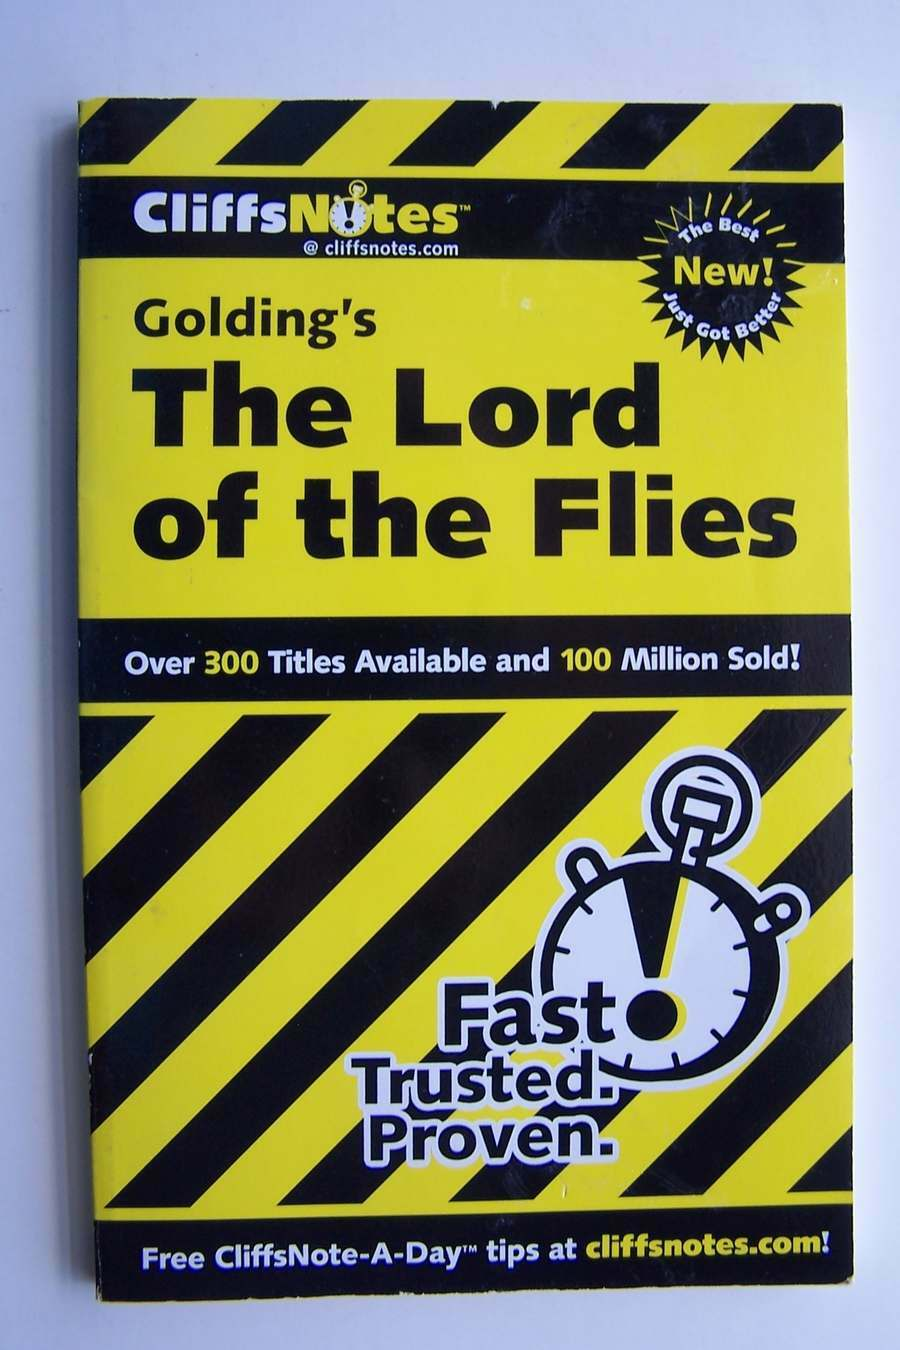 CliffsNotes on Golding's Lord of the Flies (Literature